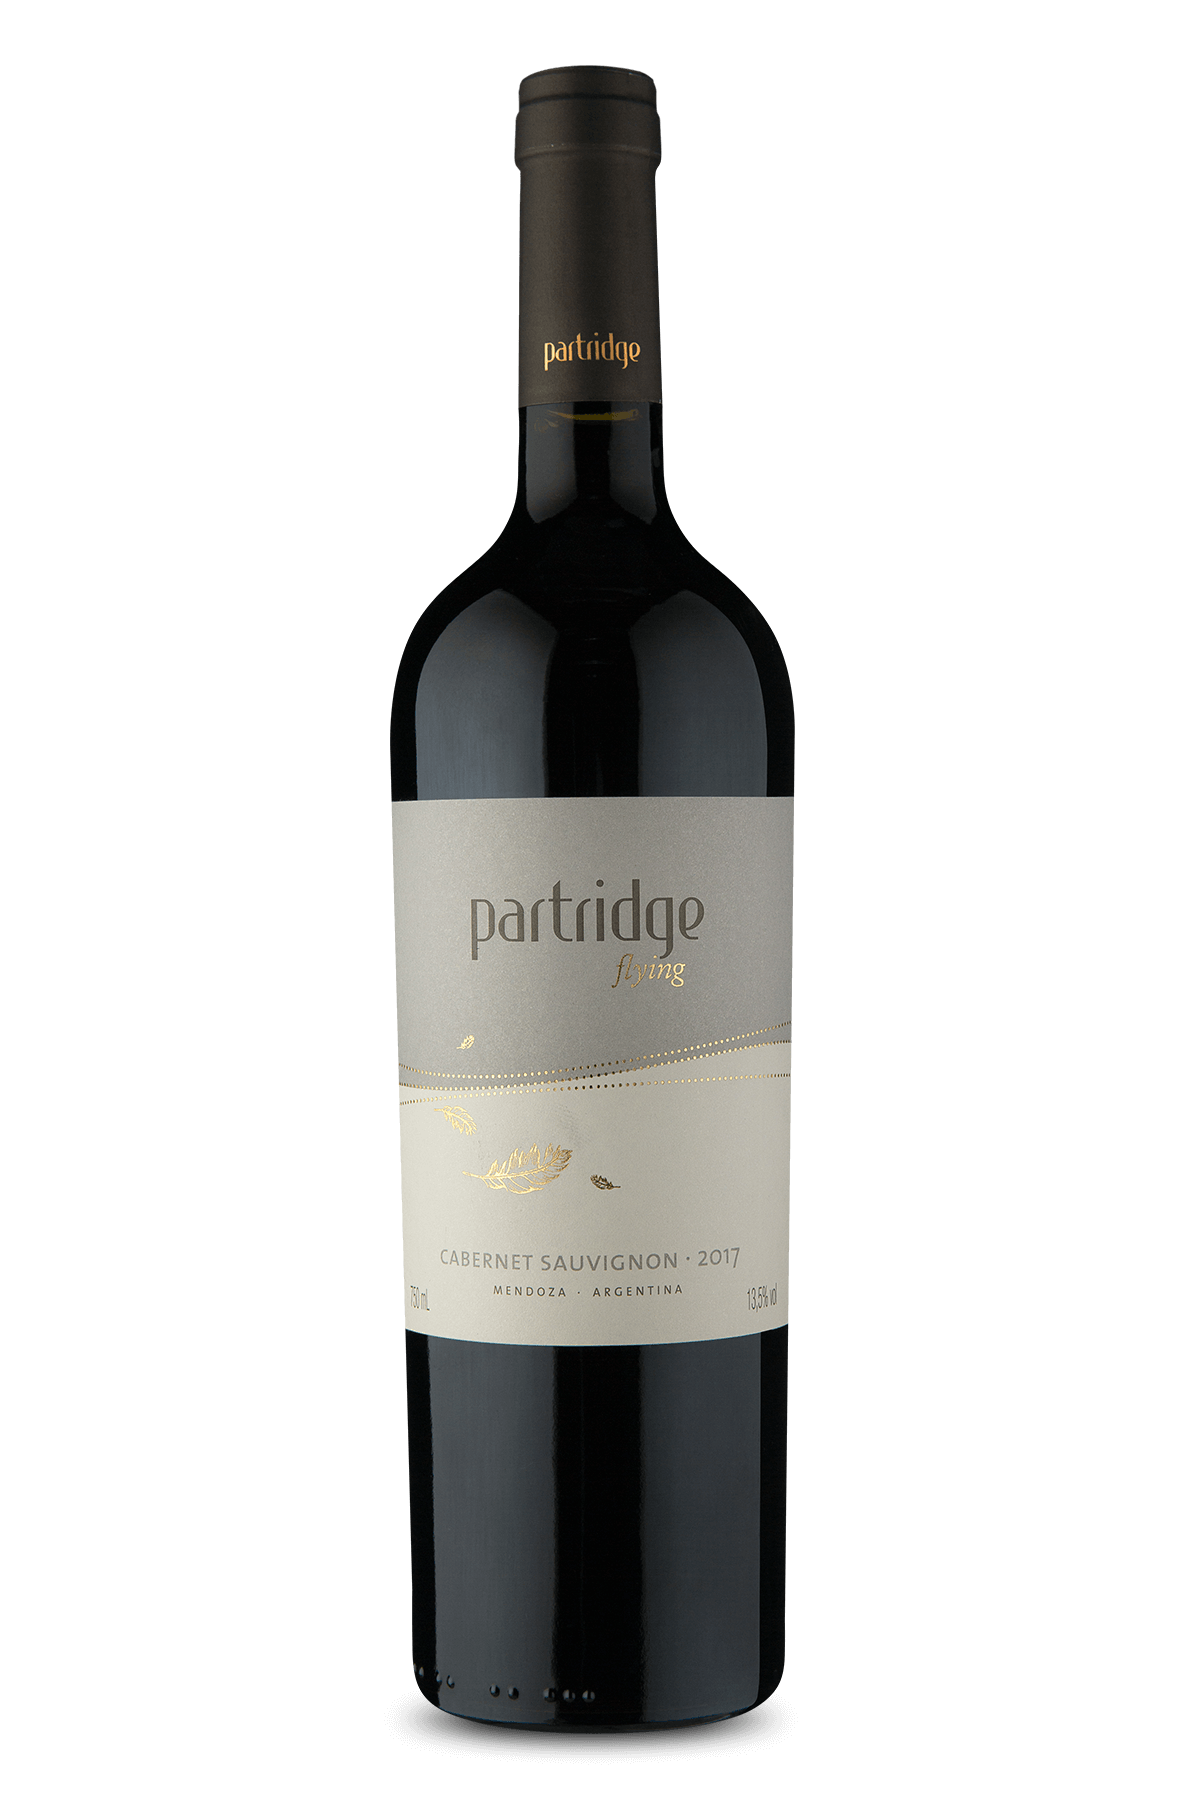 Las Perdices Partridge Flying Cabernet Sauvignon 2017